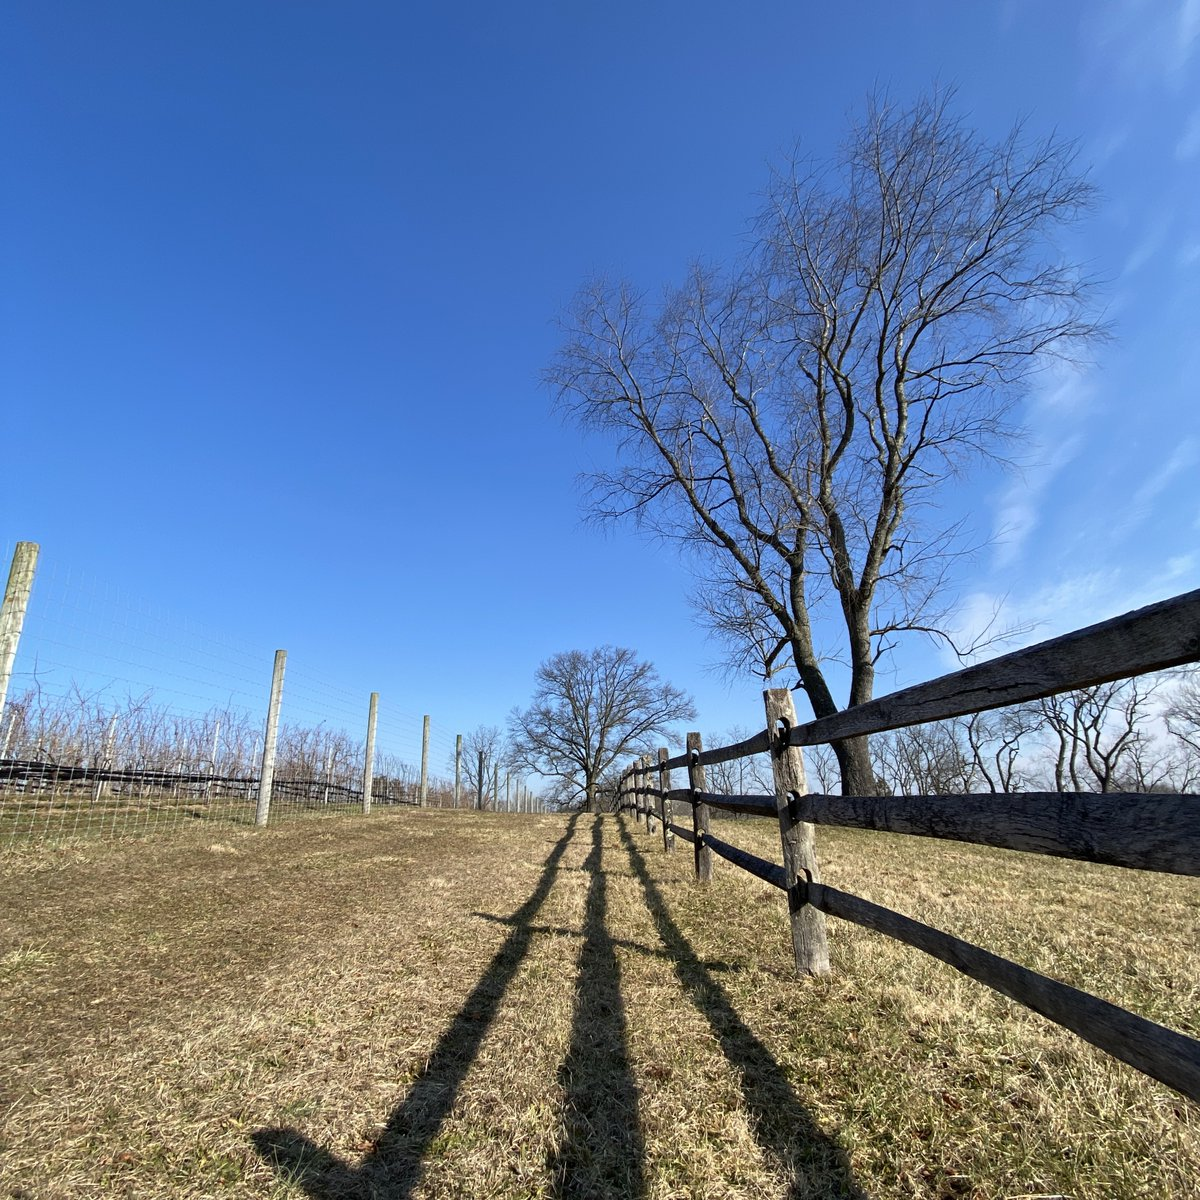 More exciting Karamoor event announcements are on the horizon!  For the latest updates, be sure to keep a watch on our social media accounts and at   #newyear #outdoorevents #pawine #pawinery #makeitmontco #montcopa #drinklocal #drinklocalpa